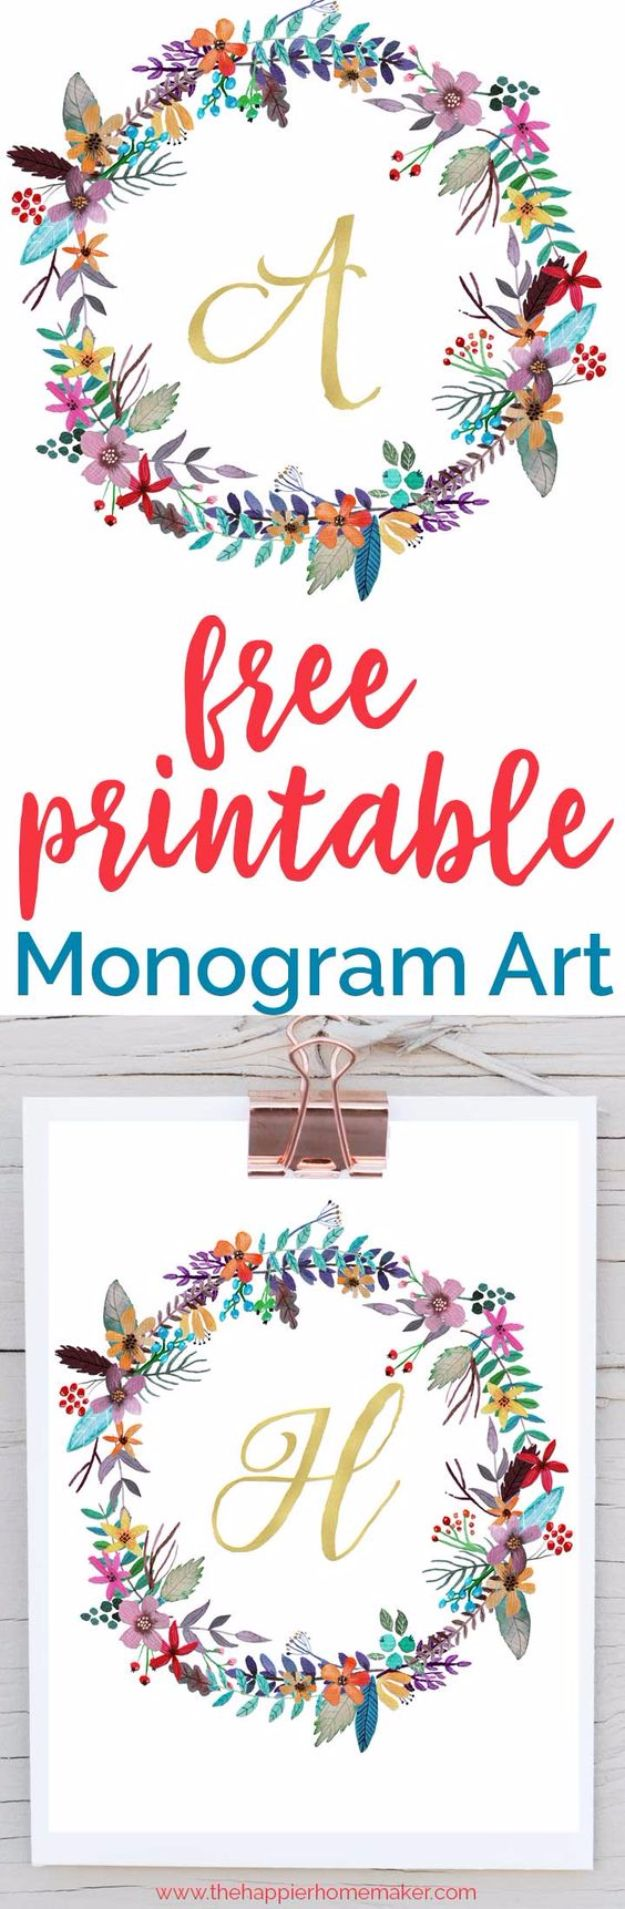 Free Printables For Your Walls - Free Printable Monogram Art - Best Free Prints for Wall Art and Picture to Print for Home and Bedroom Decor - Ideas for the Home, Organization - Quotes for Bedroom and Kitchens, Vintage Bathroom Pictures - Downloadable Printable for Kids - DIY and Crafts by DIY JOY http://diyjoy.com/free-printables-walls